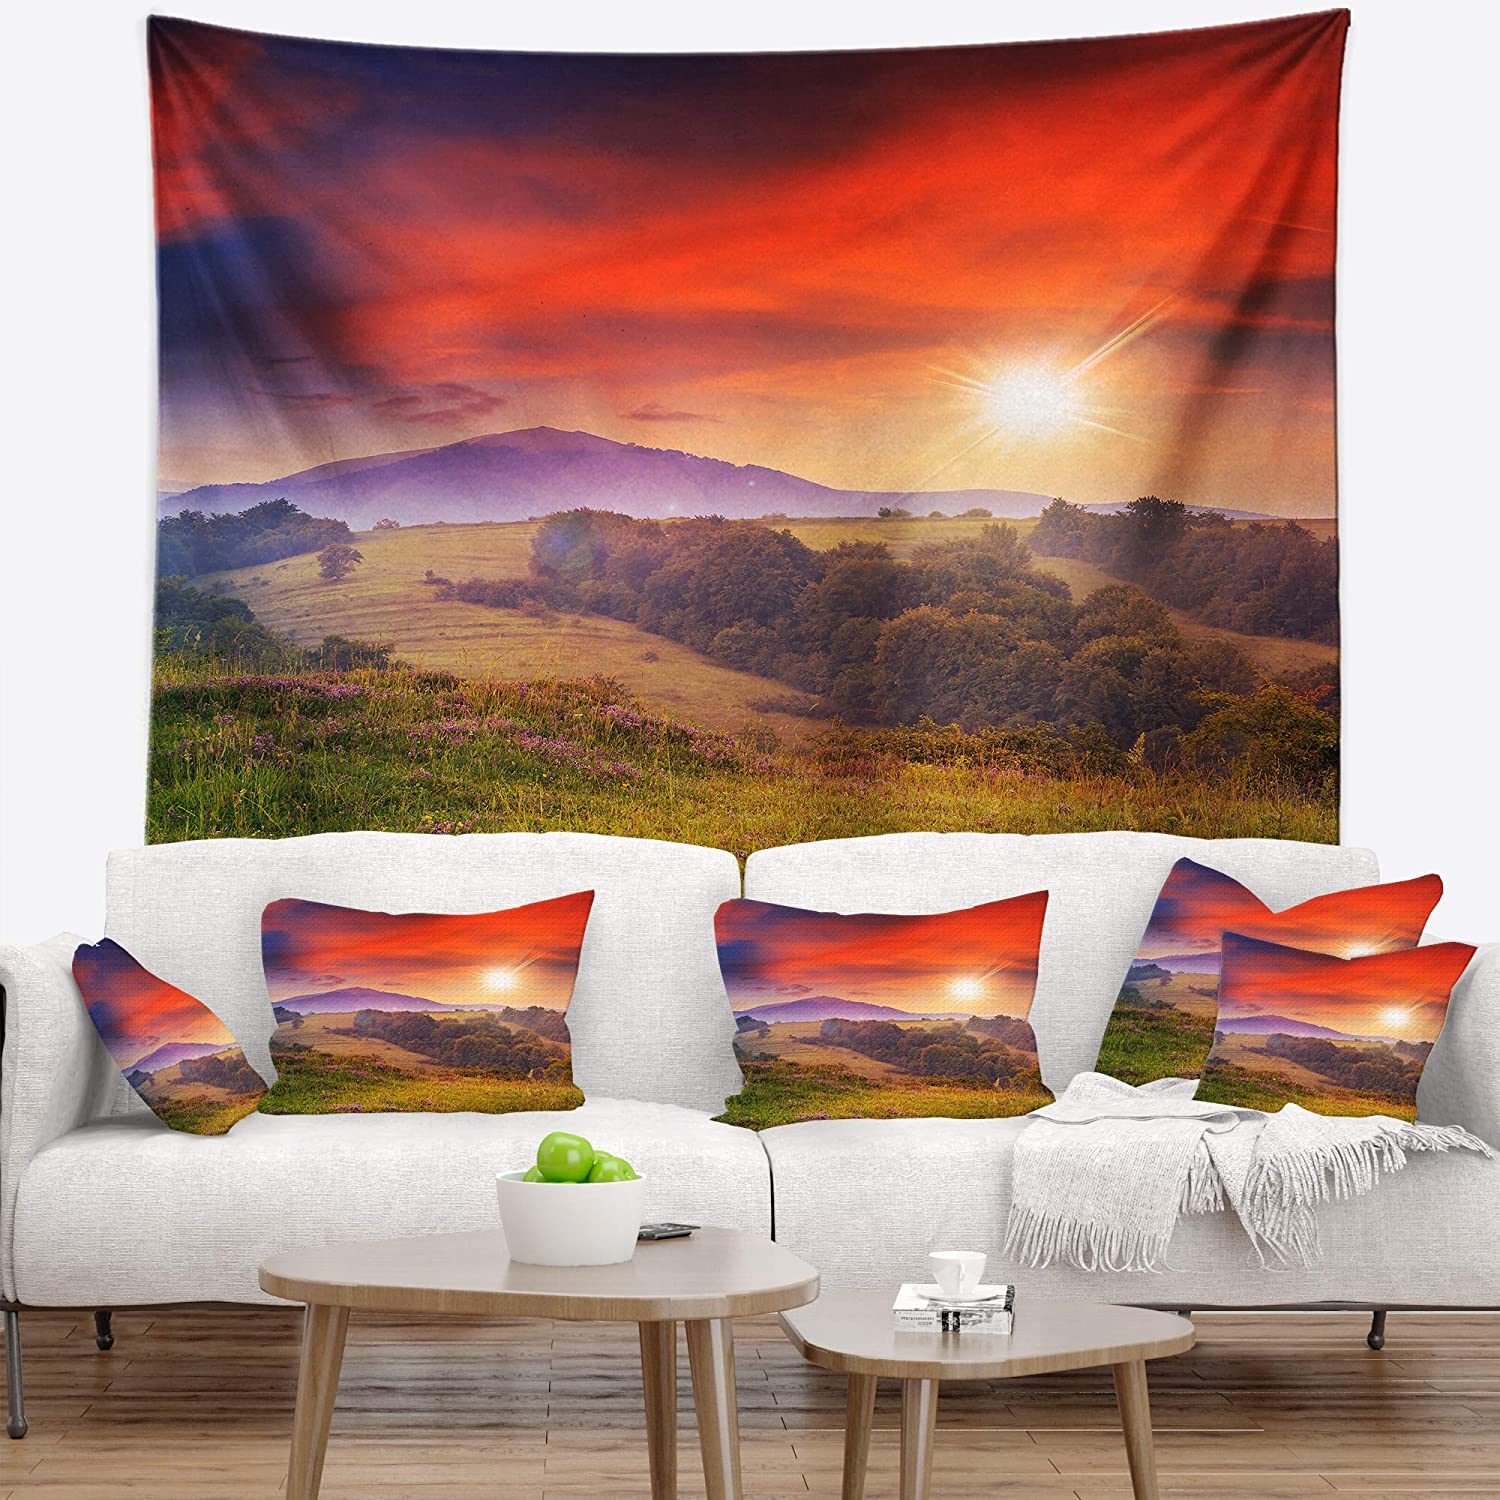 Designart Tap9635 80 68 Cold Morning Fog With Red Hot Sun Landscape Photography Blanket Décor Art For Home And Office Wall Tapestry X Large 80 X 68 Created On Lightweight Polyester Fabric